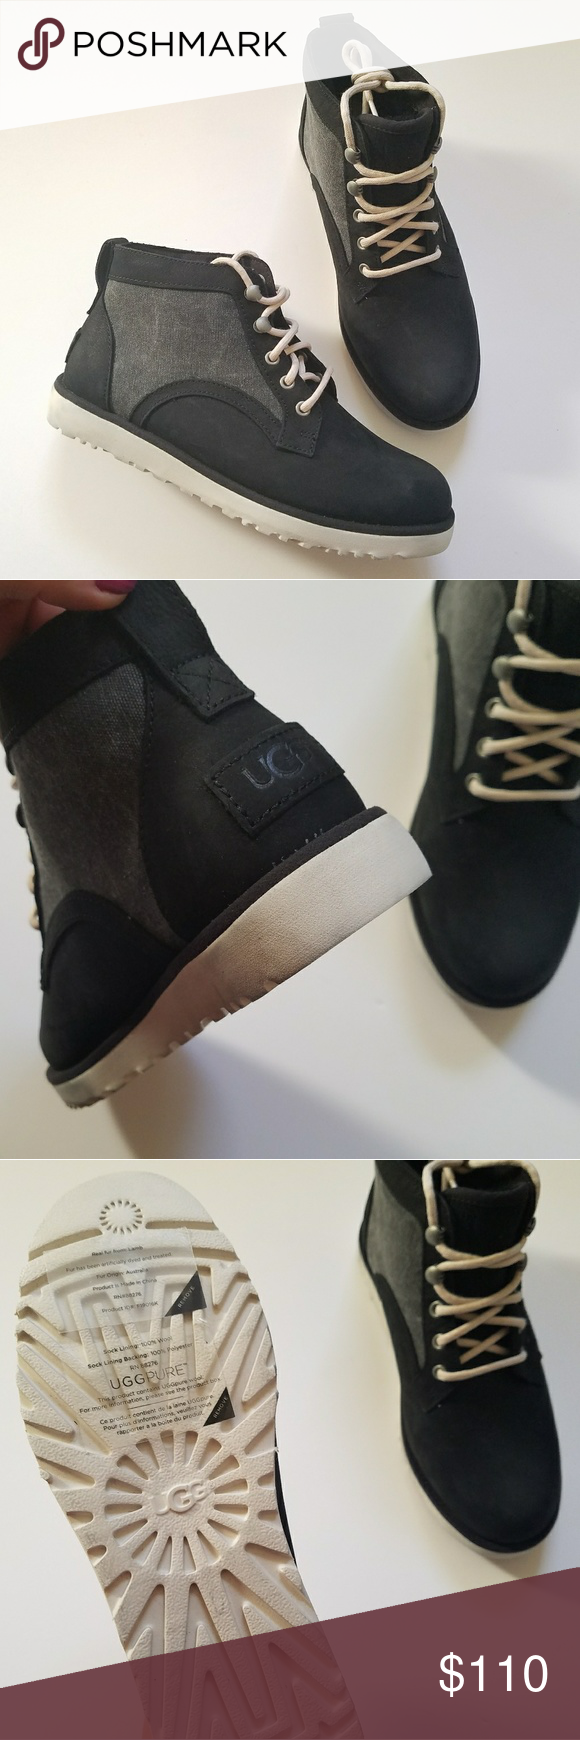 5e6aaa7f9a9 NEW UGG Bethany Canvas Winter Boots in Black NEW without tags or box ...